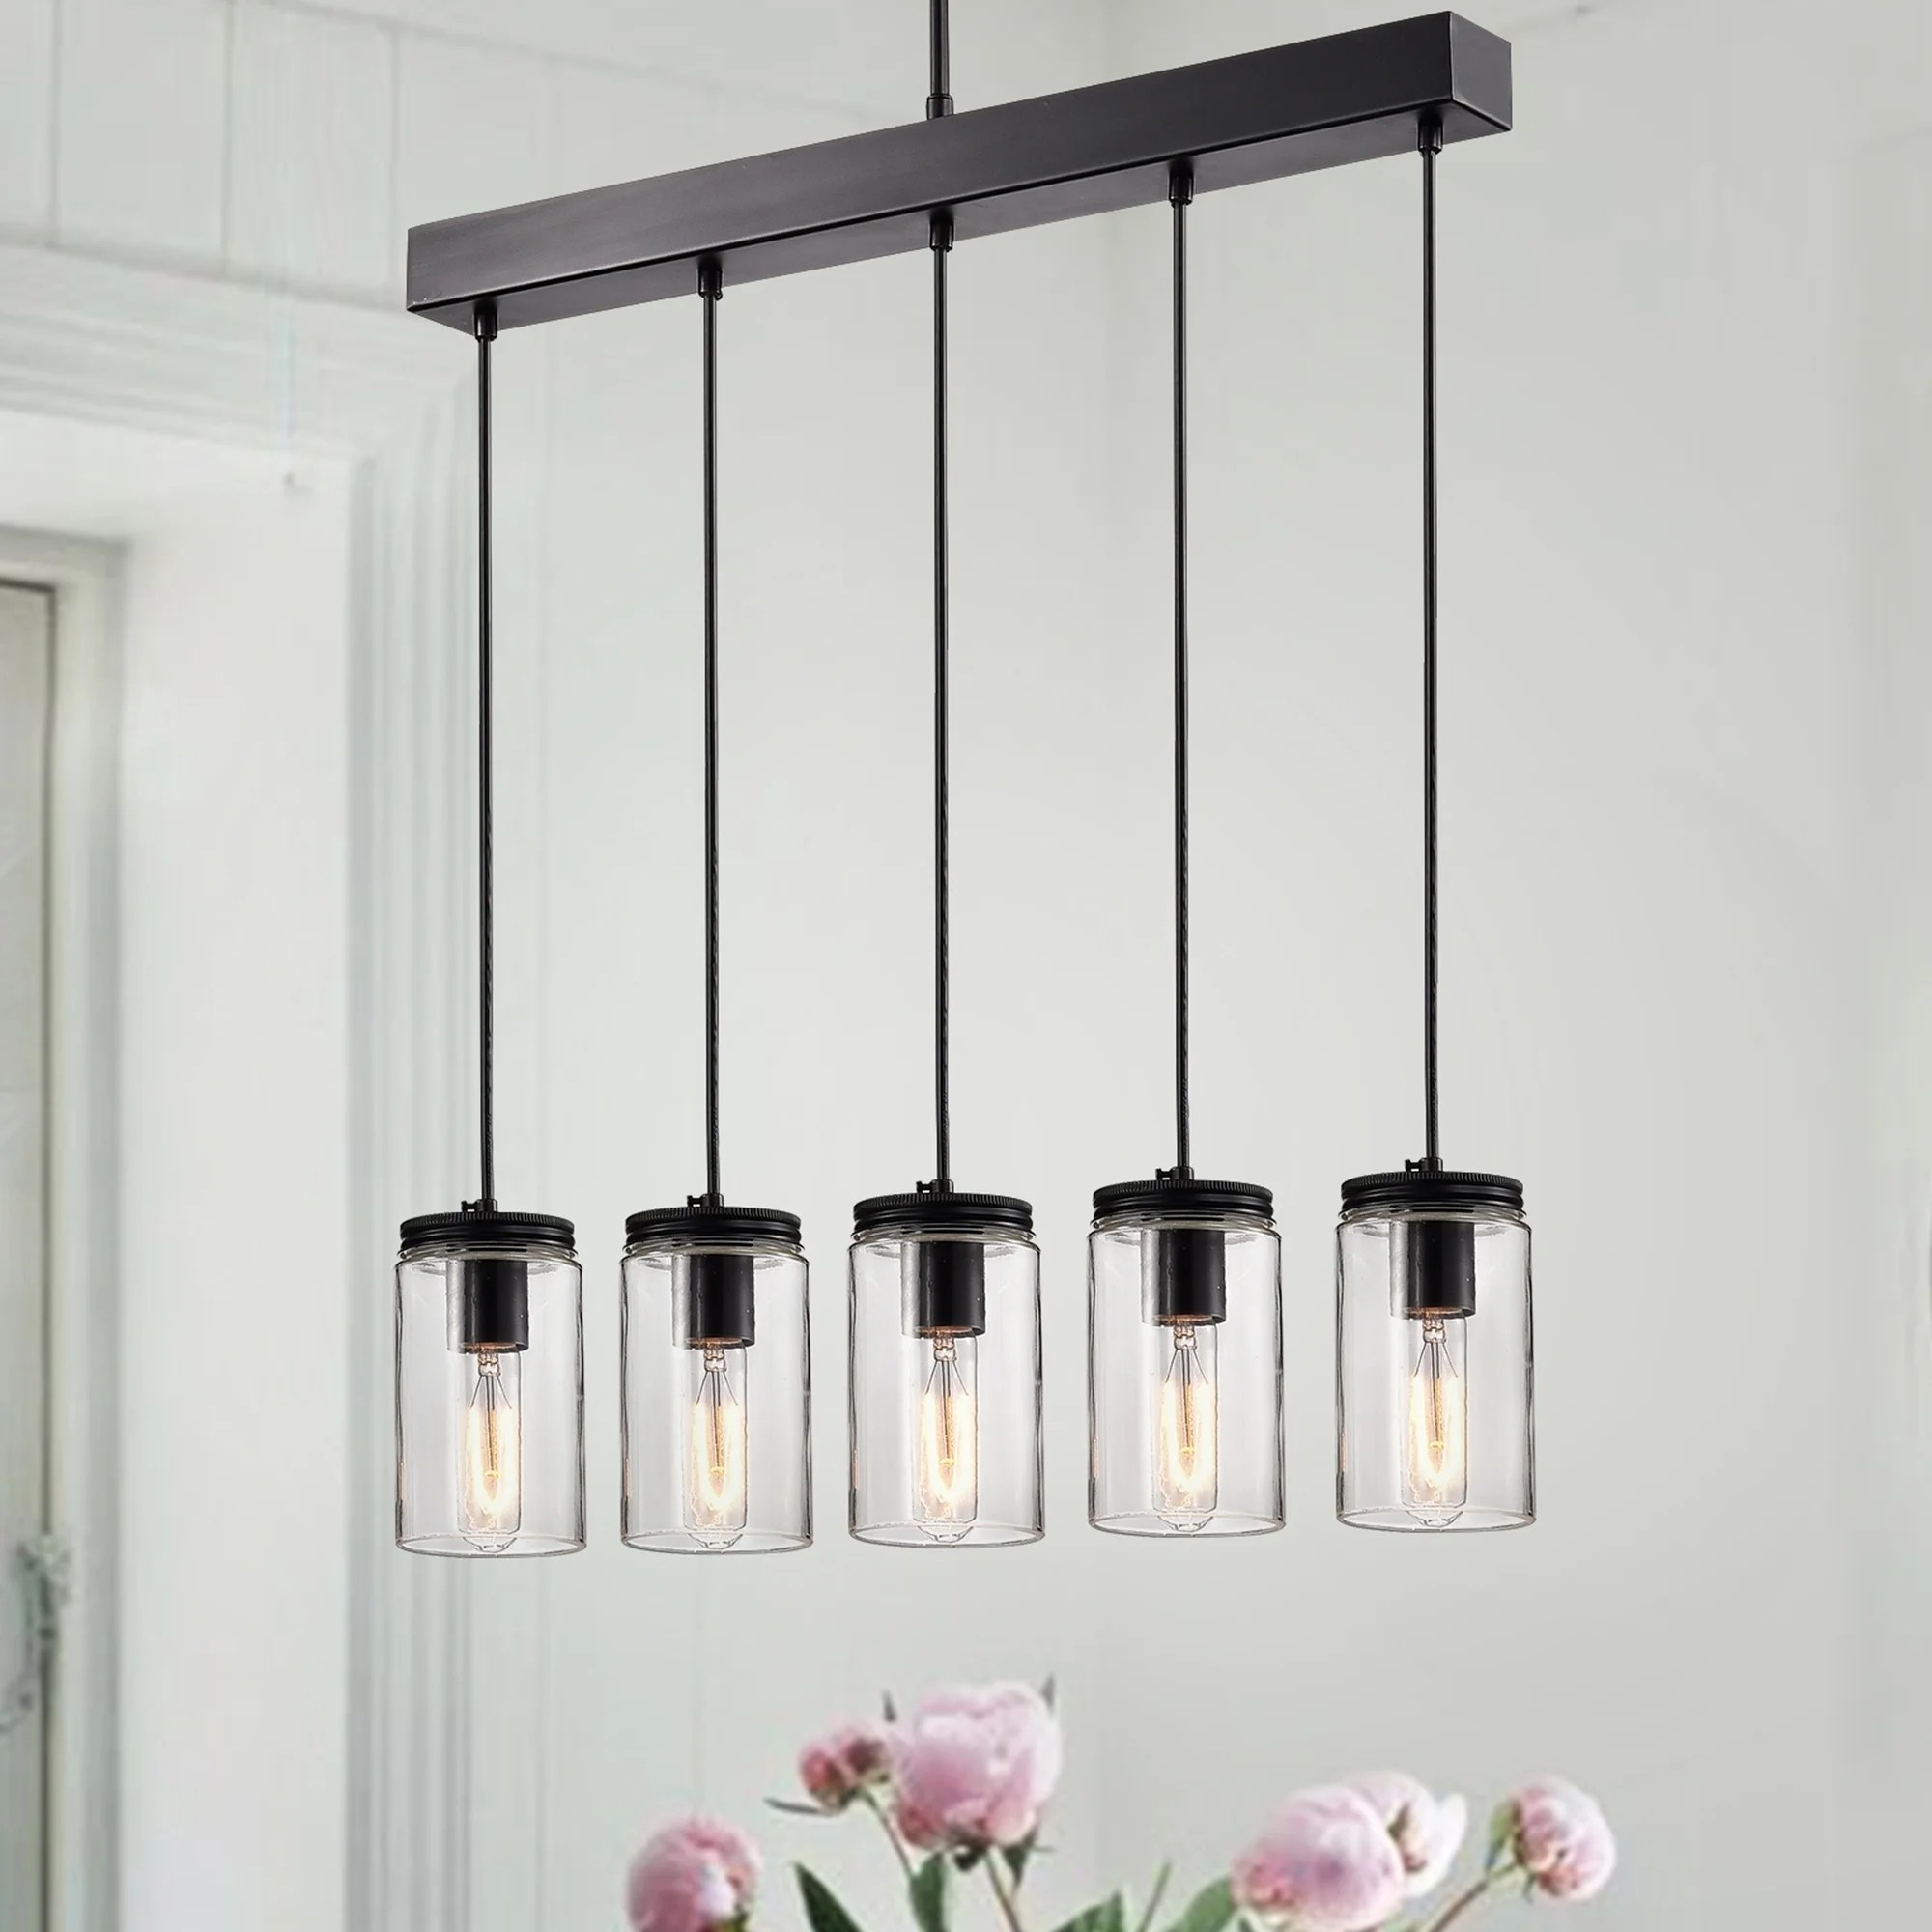 Glass Jar Lamp Shade Shop Nando Matte Black 5 Light Linear Chandelier With Clear Glass